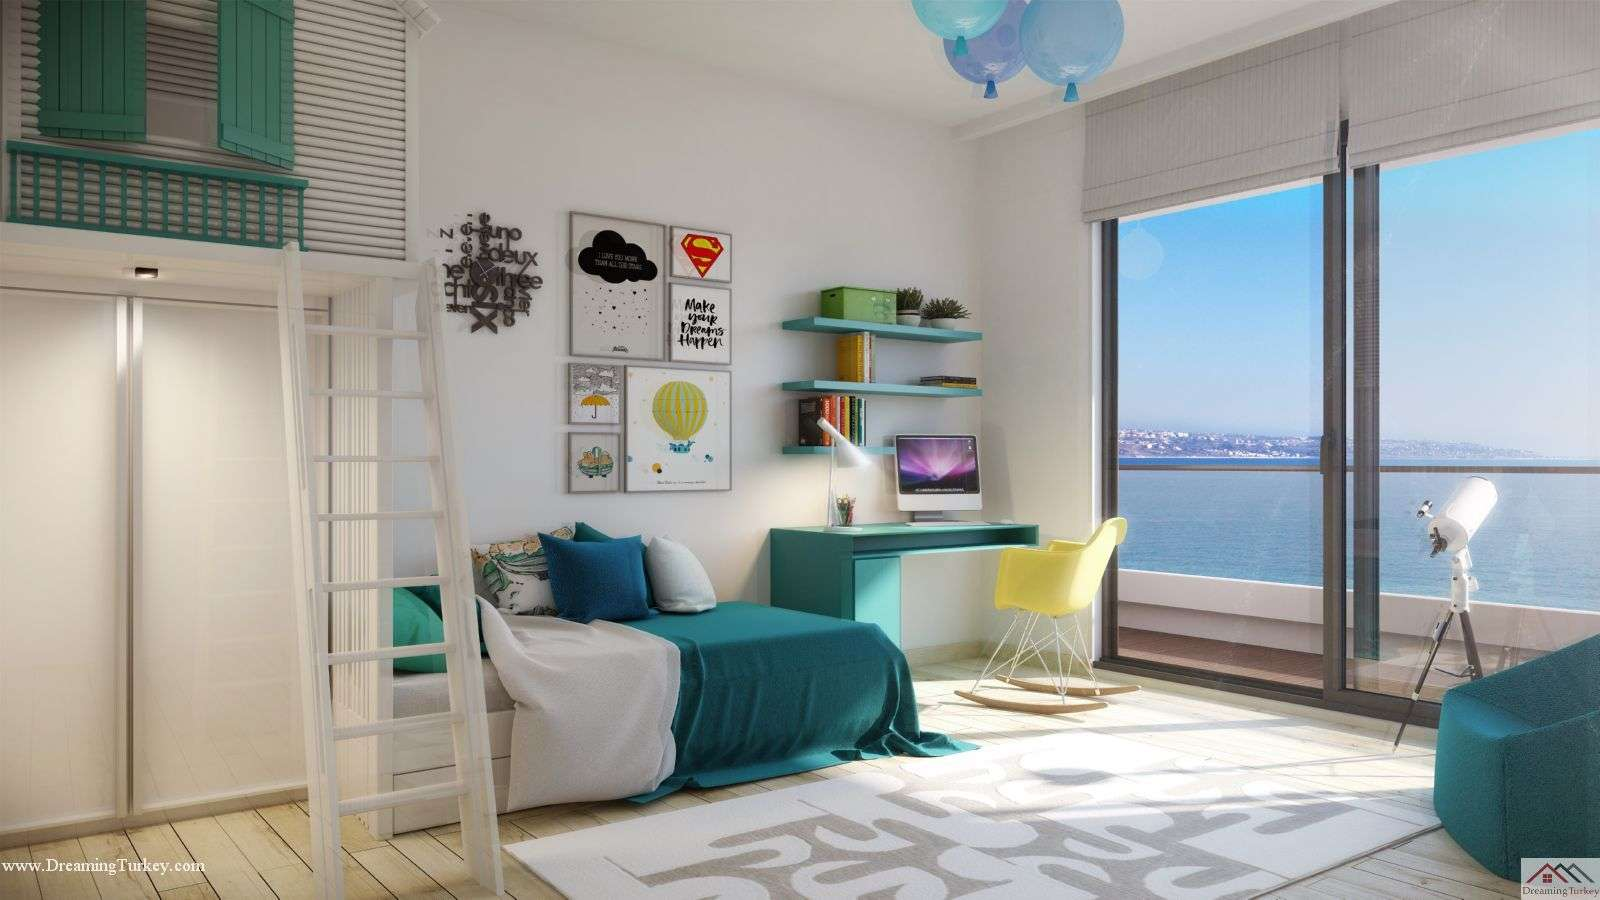 3-Bedroom Apartment inside a Coastal Complex in Istanbul